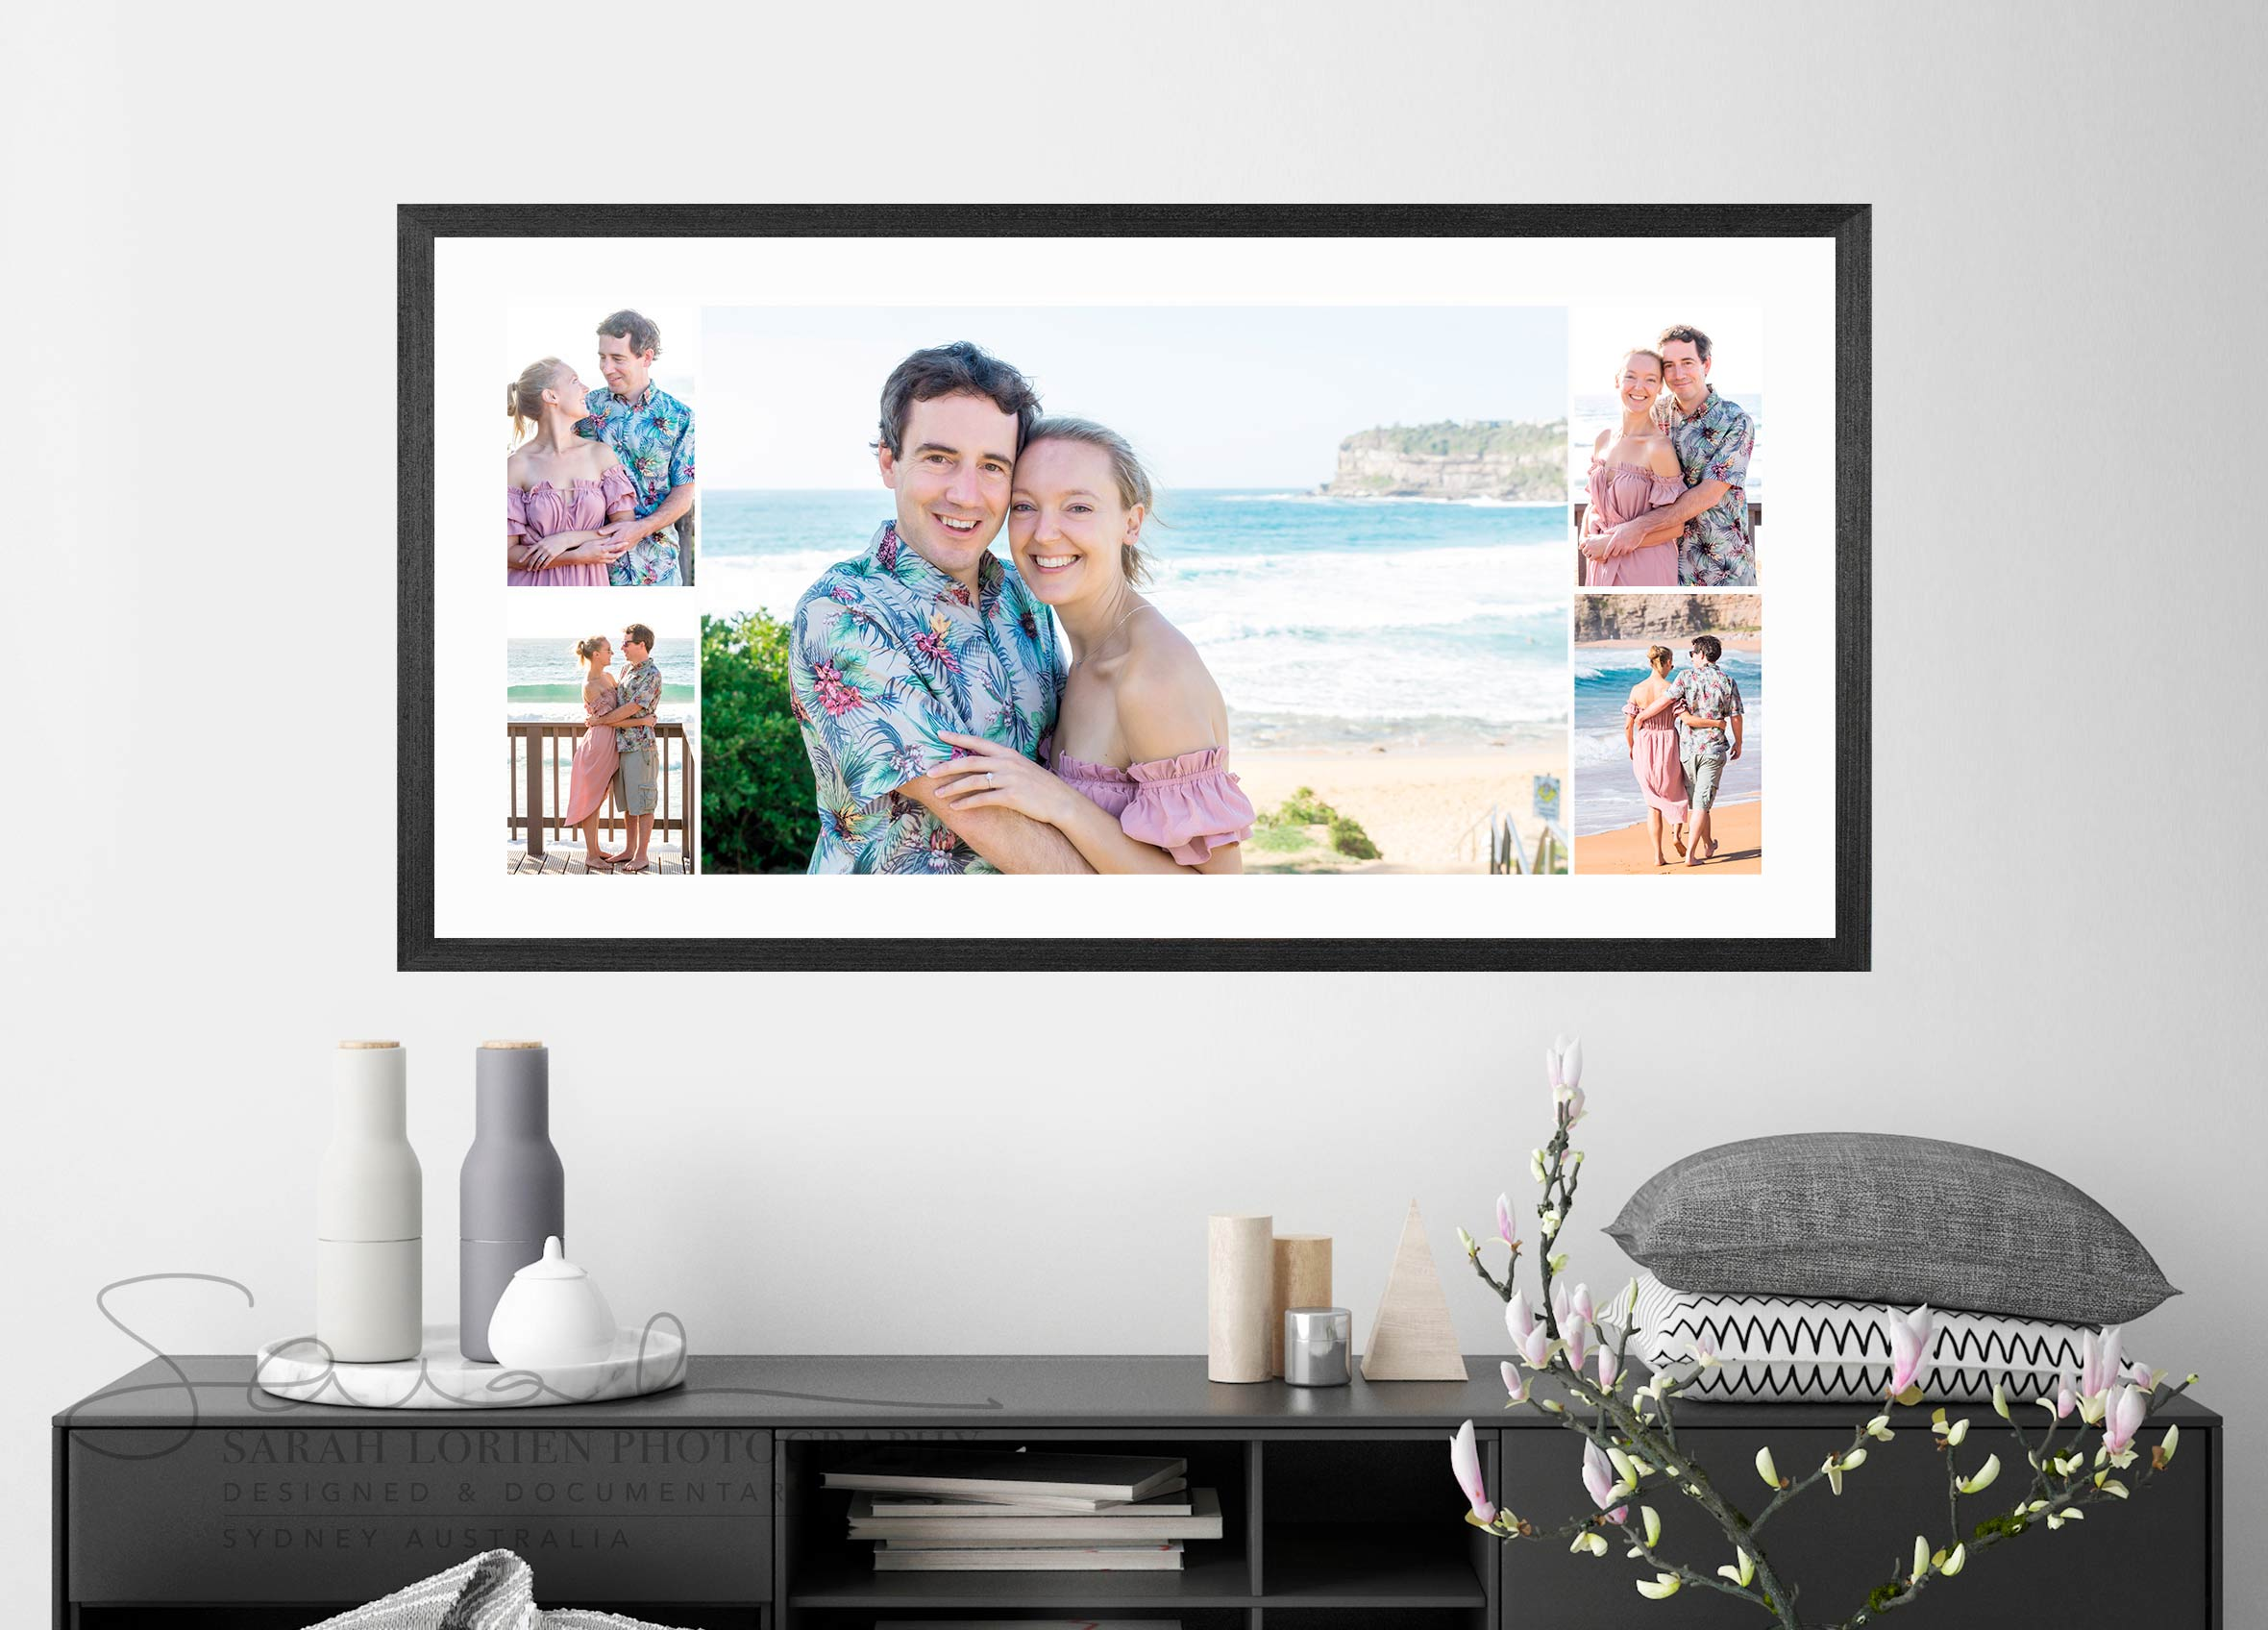 Framed photo montage engagement photography